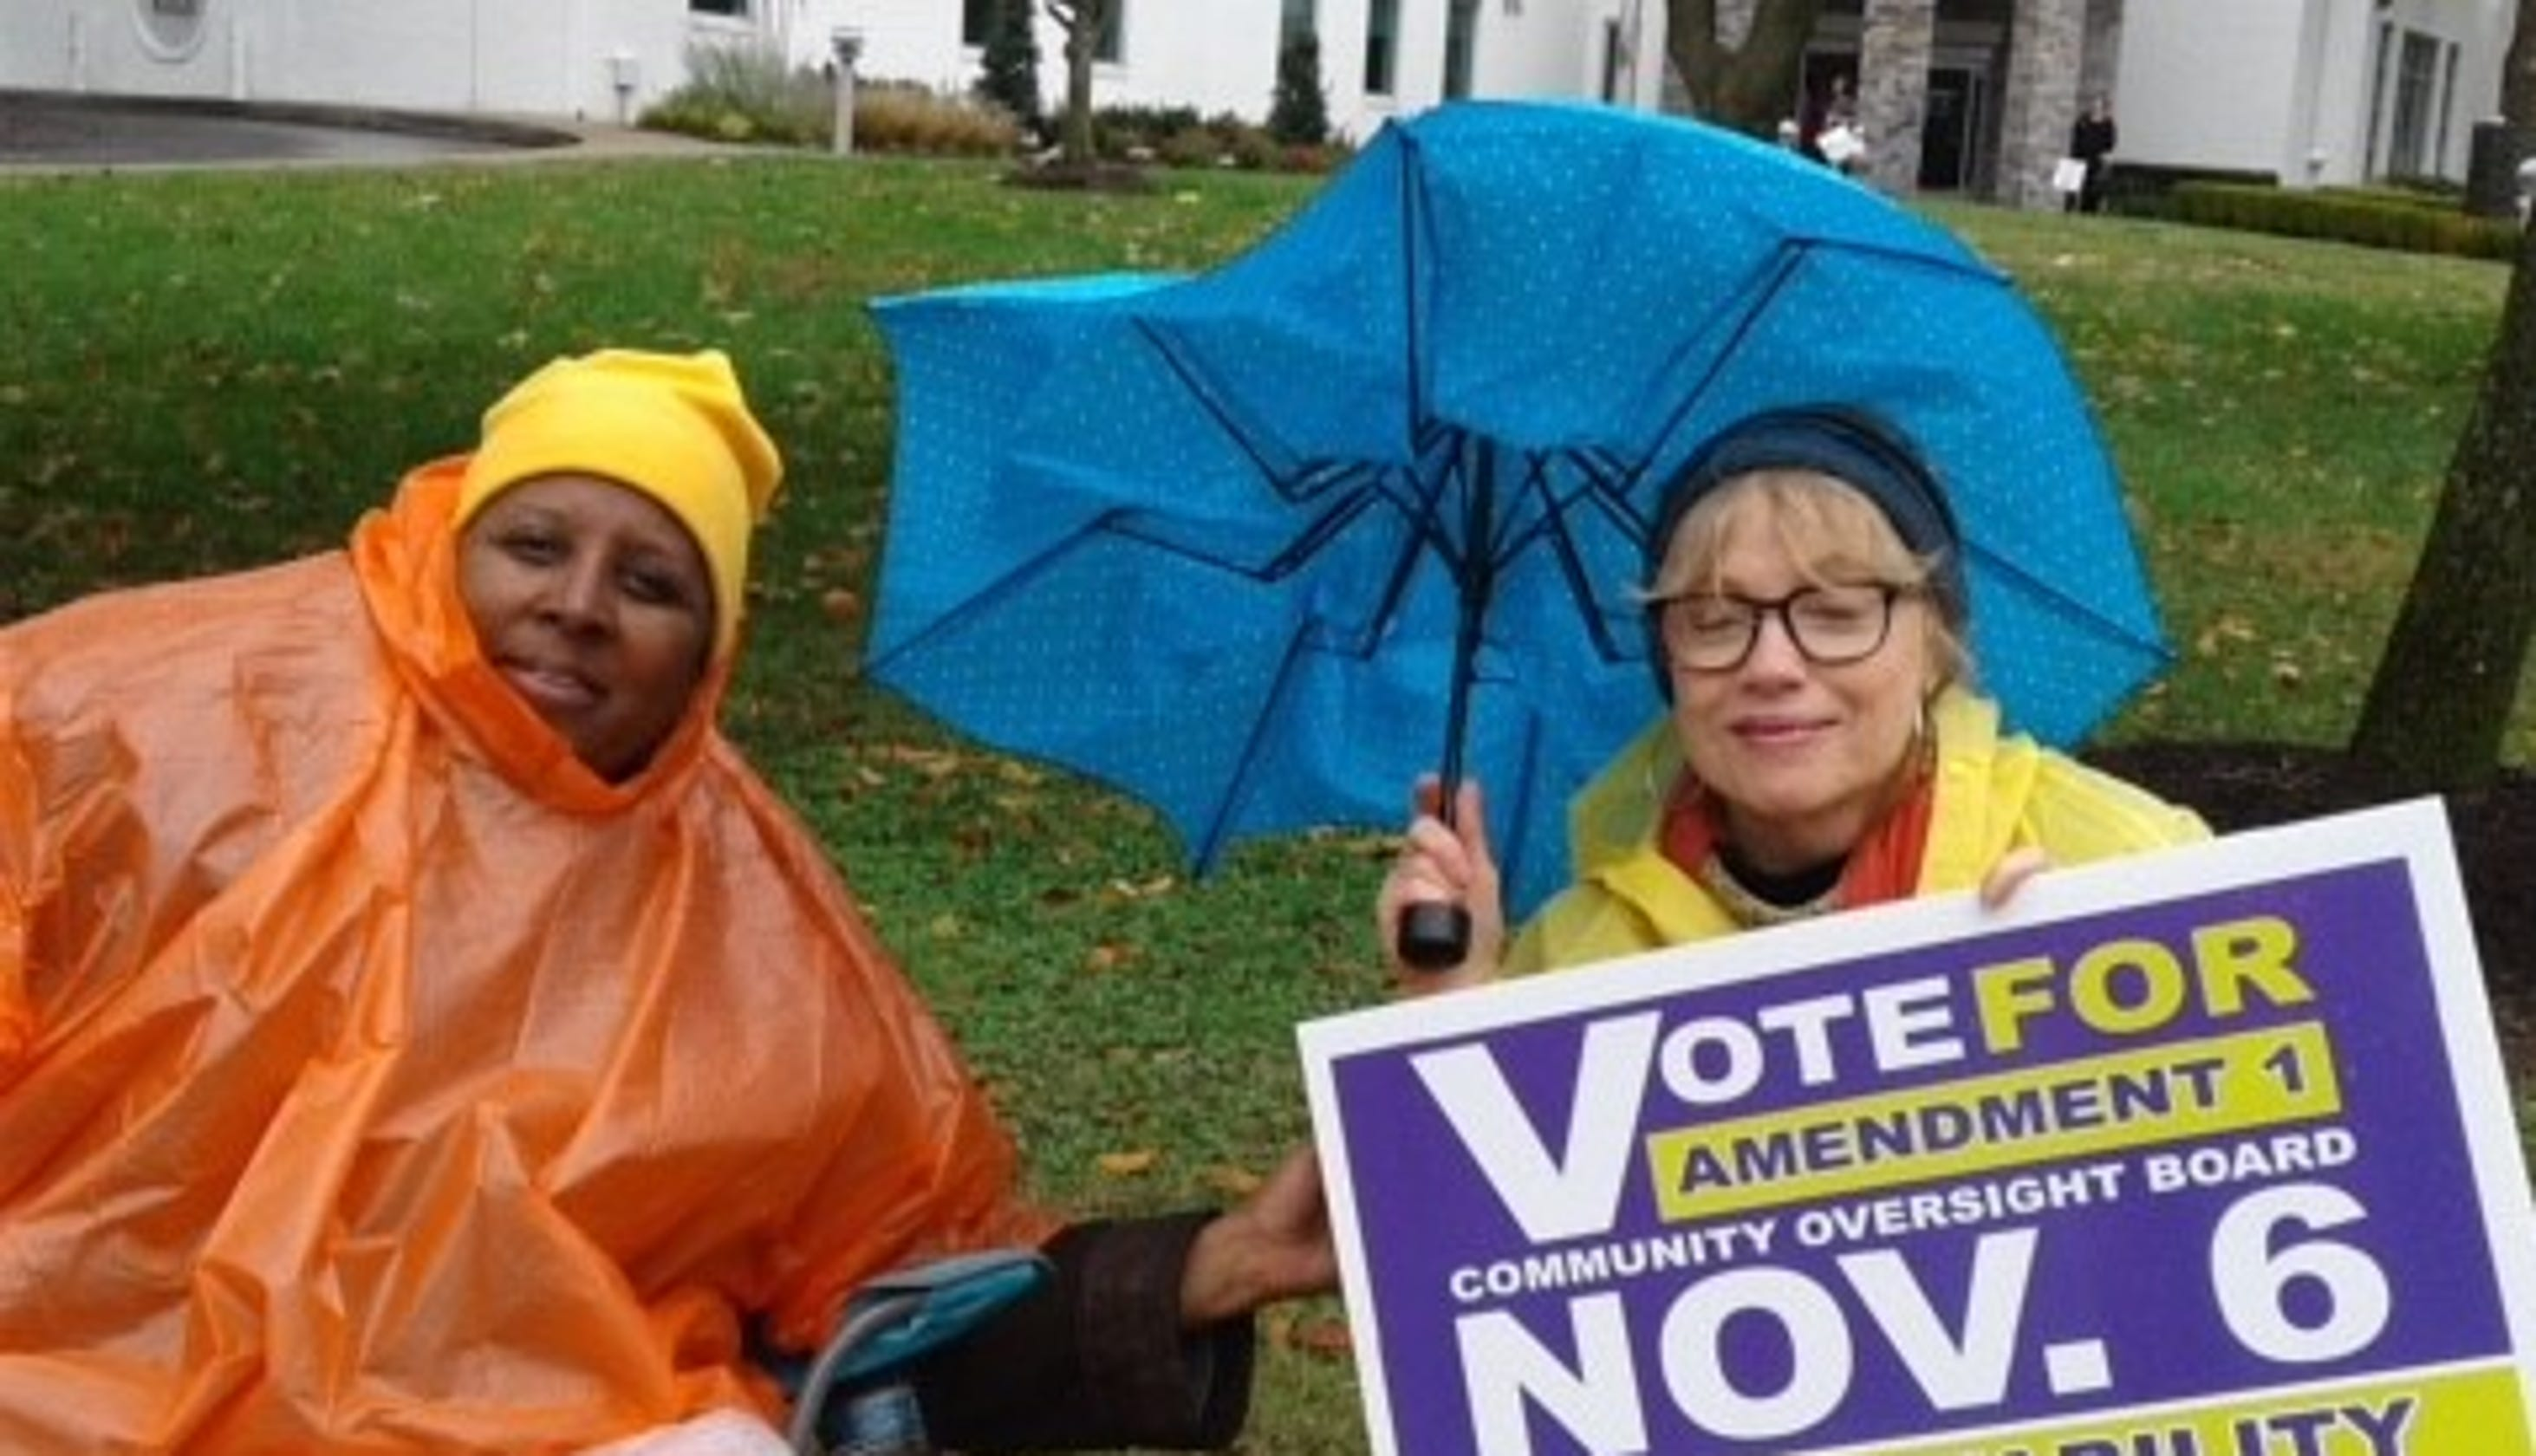 Nashville Amendment 1 How The Campaign For Police Oversight Succeeded